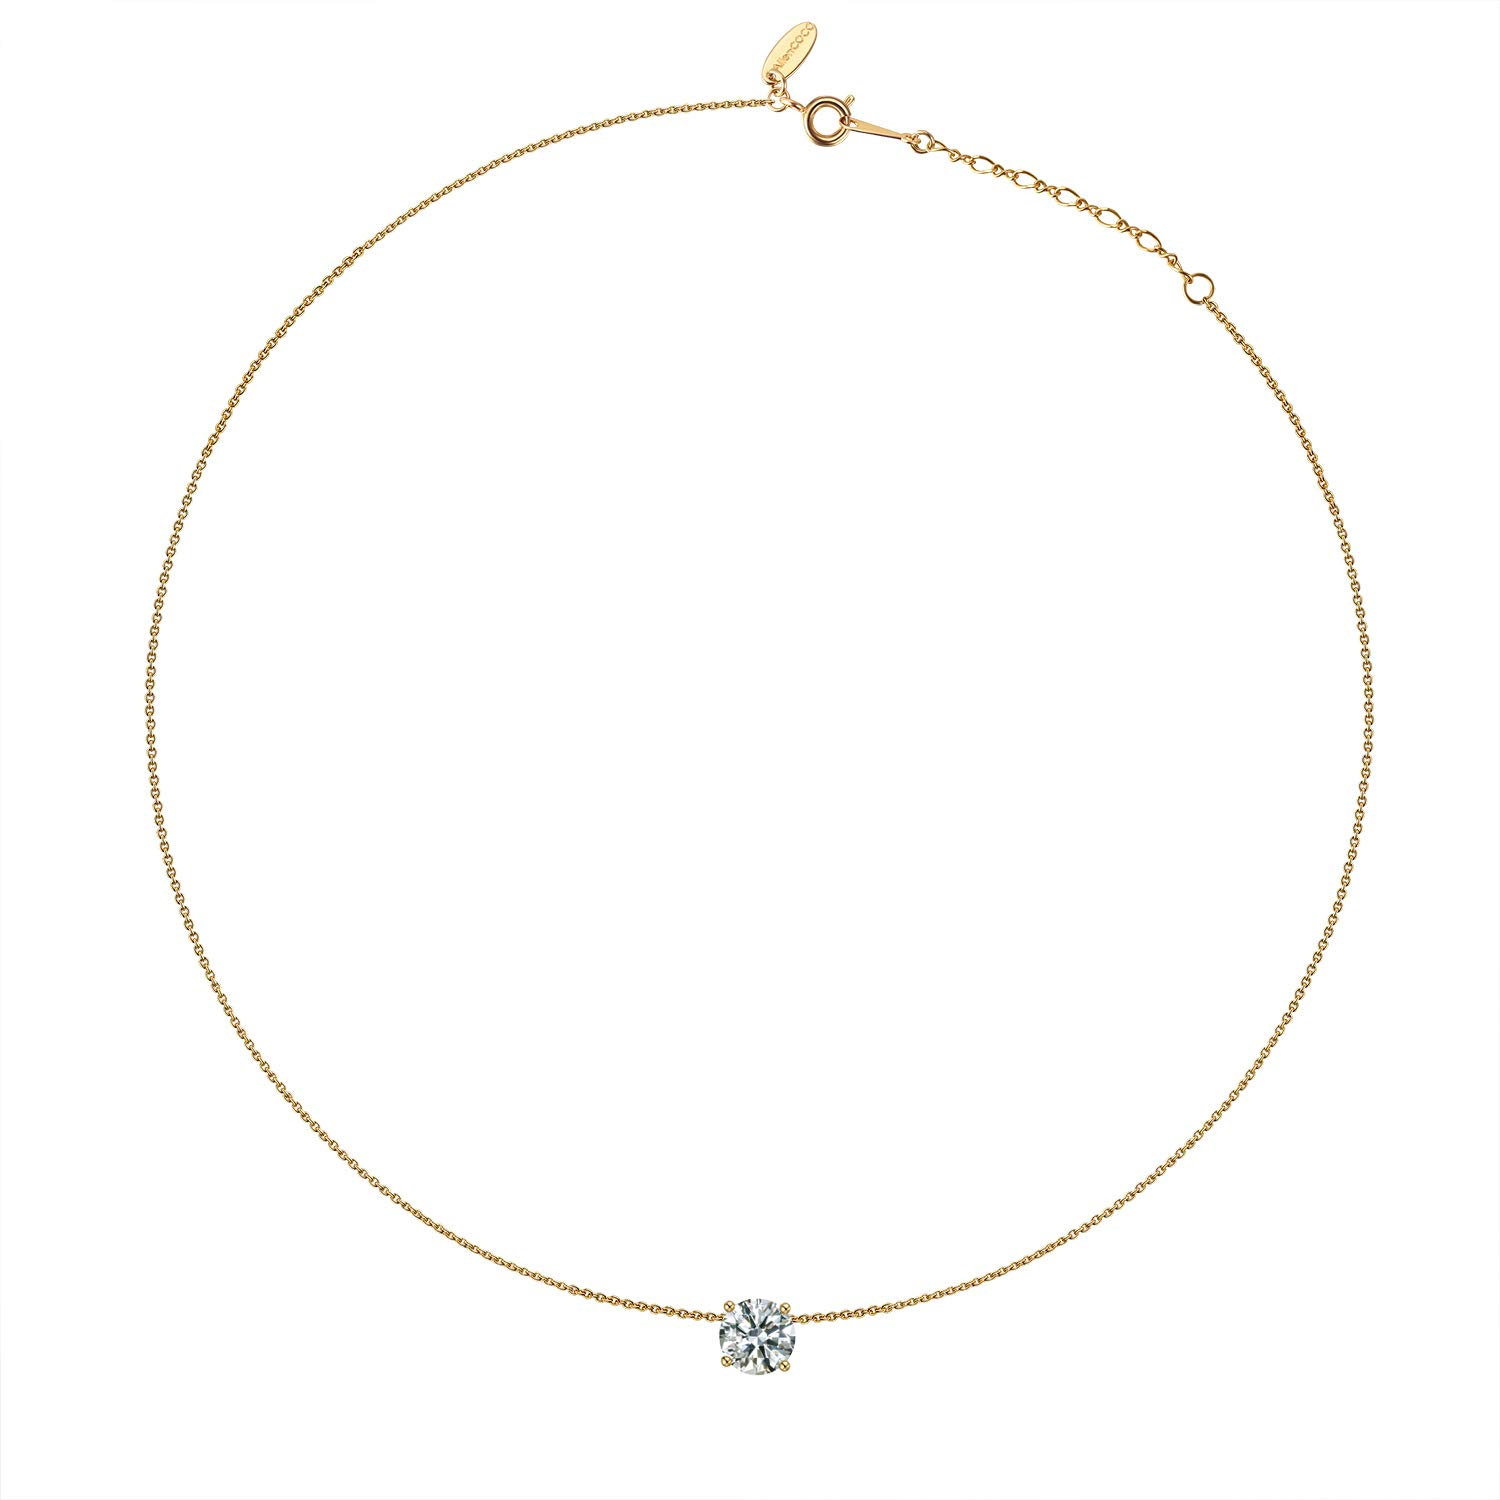 Kainier Choker Pendant Necklace 14K Gold Plated Chian Cubic Zirconia Diamond Crystal Pendant for Women (Gold) by Kainier (Image #2)